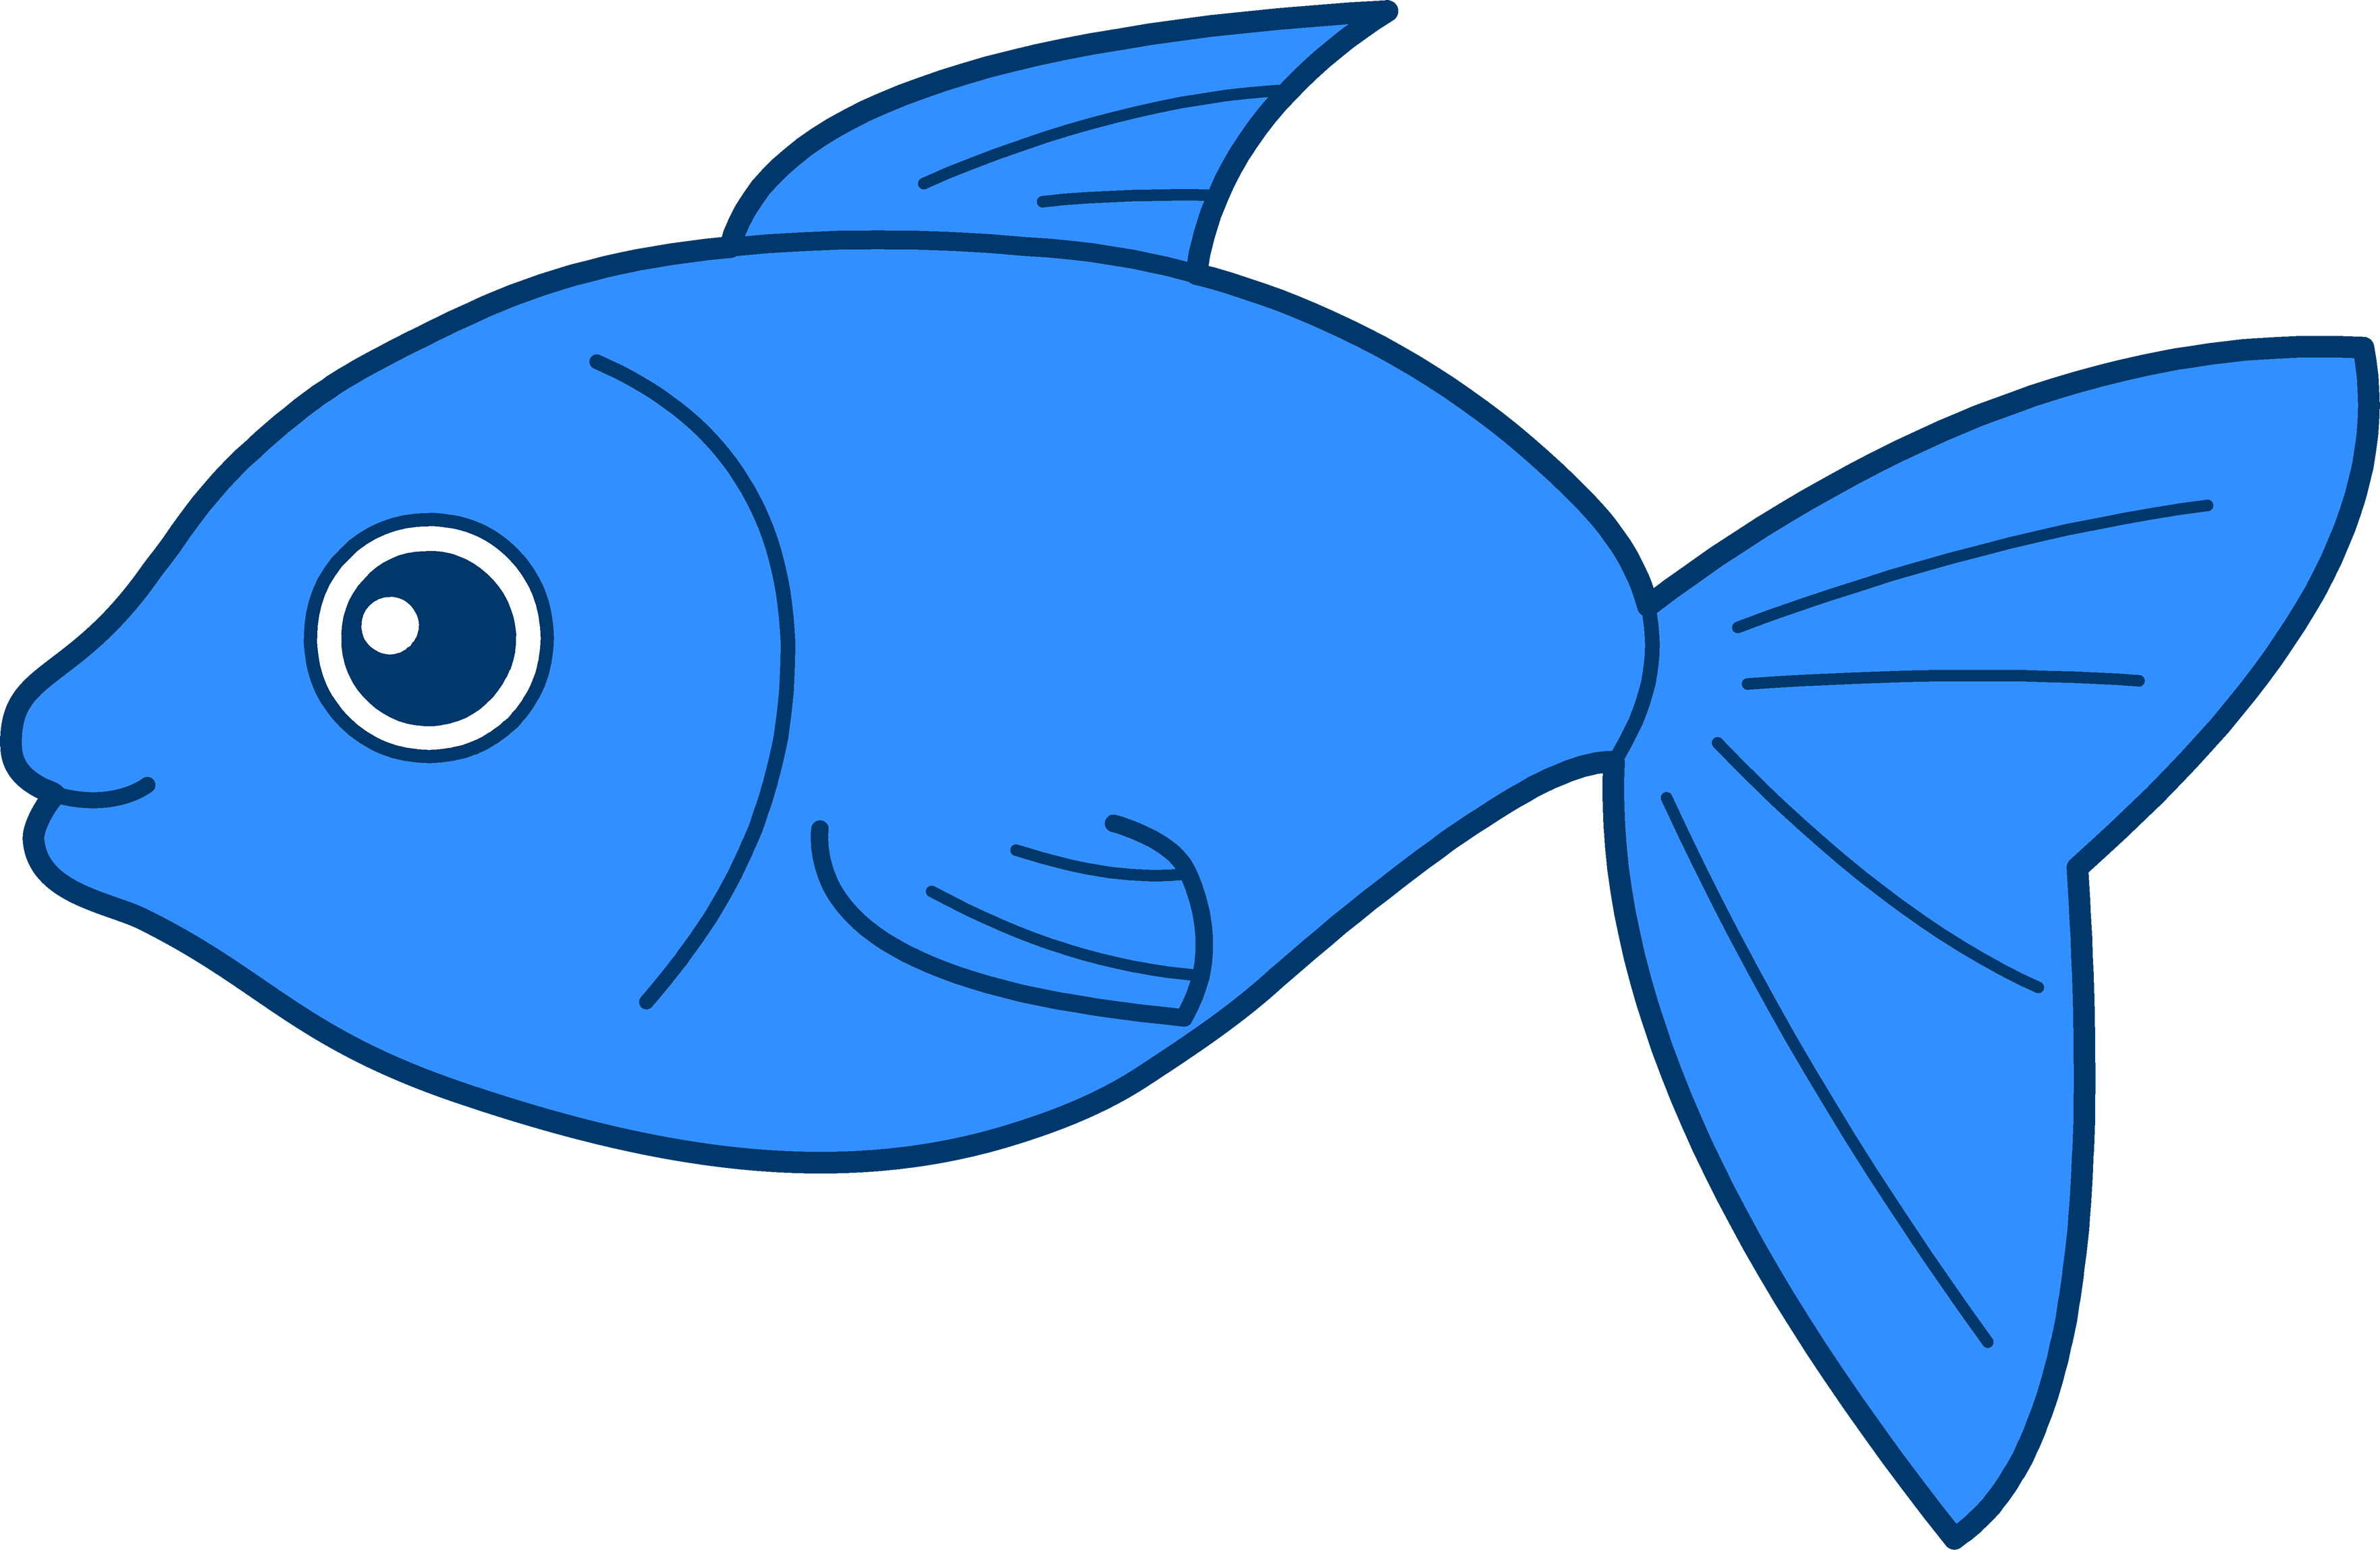 Png Fish Collection Clipart image #26335